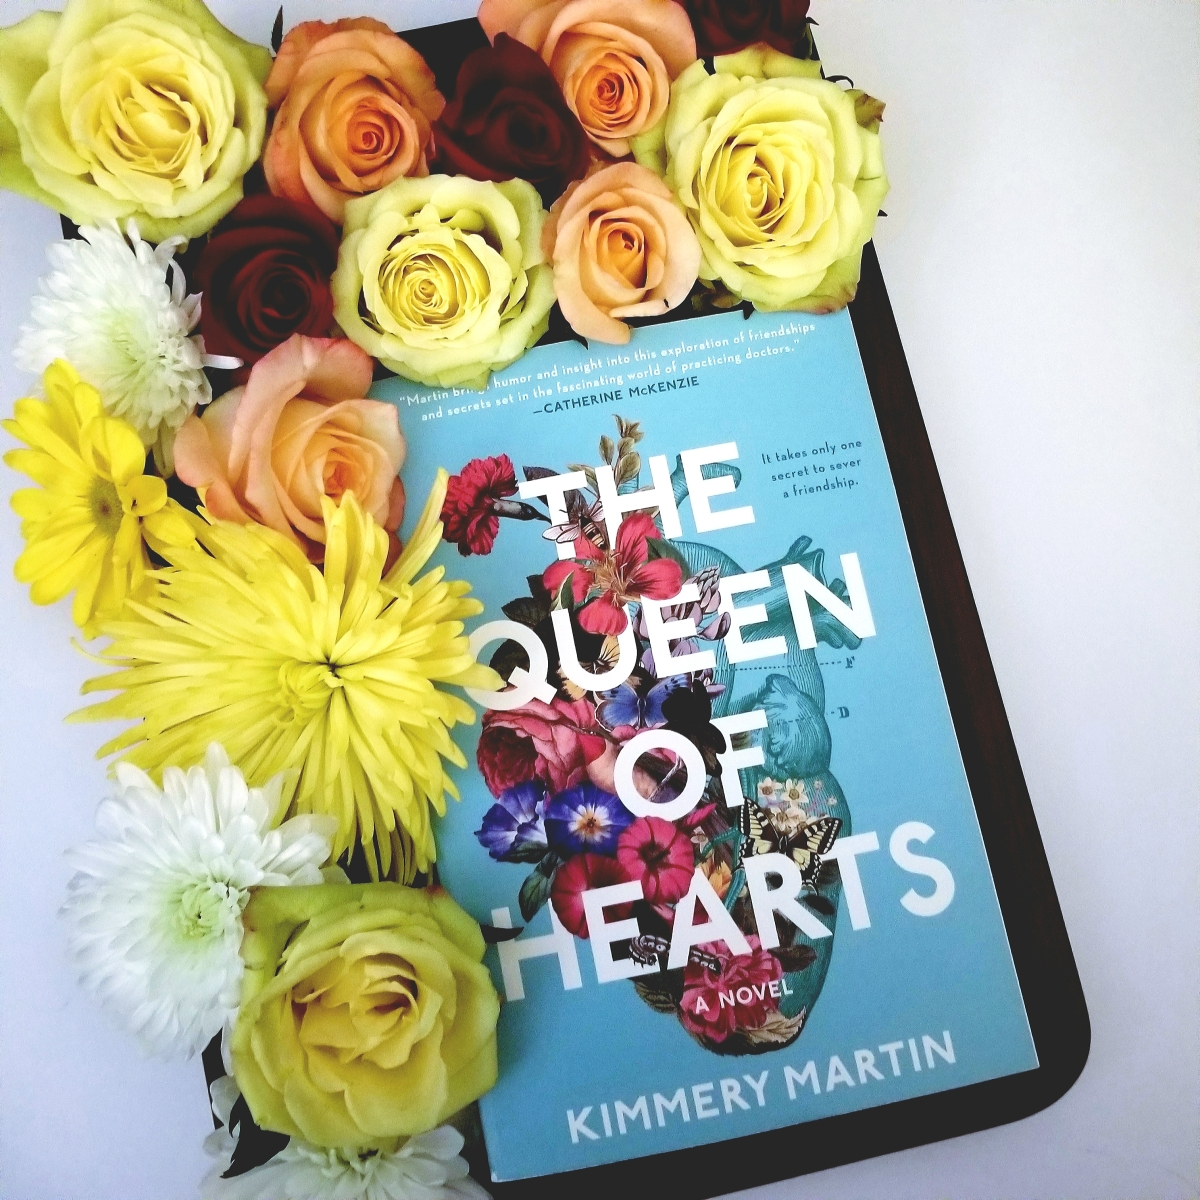 The Queen of Hearts by Kimmery Martin #bookreview #tarheelreader #thrqueenofh @kimmerym @berkleypub #thequeenofhearts #blogtour #bookgiveaway